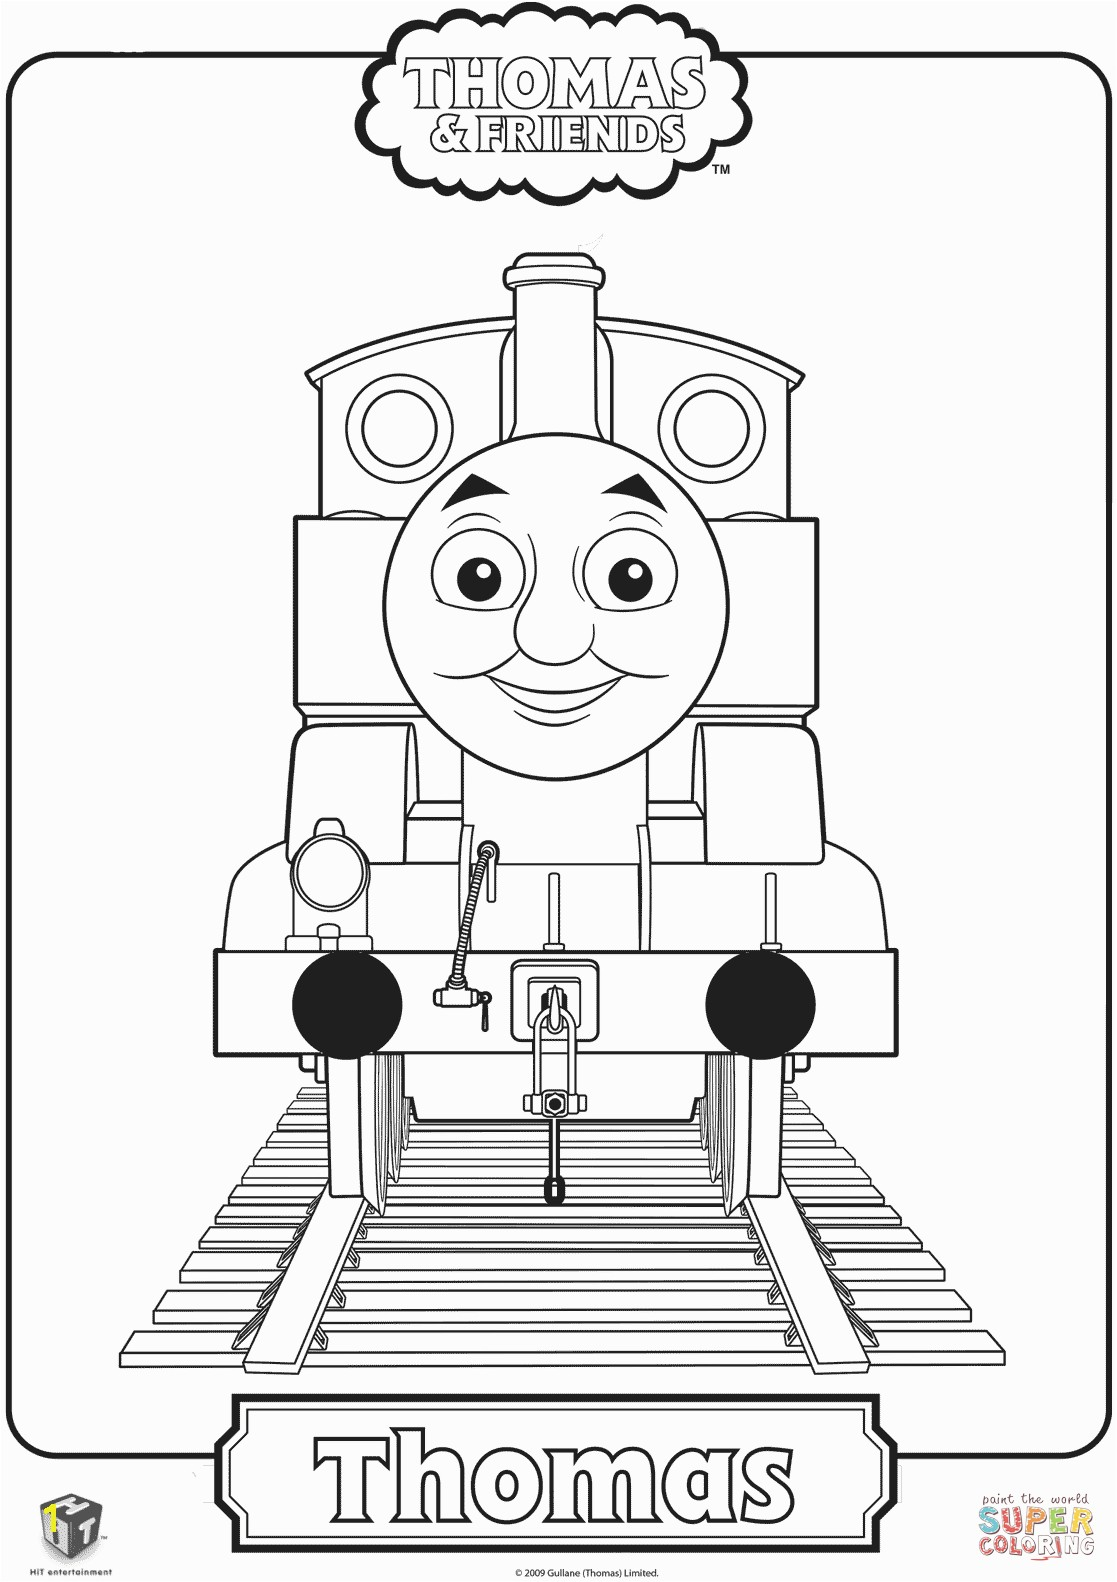 the Thomas the Train coloring pages to view printable version or color it online patible with iPad and Android tablets